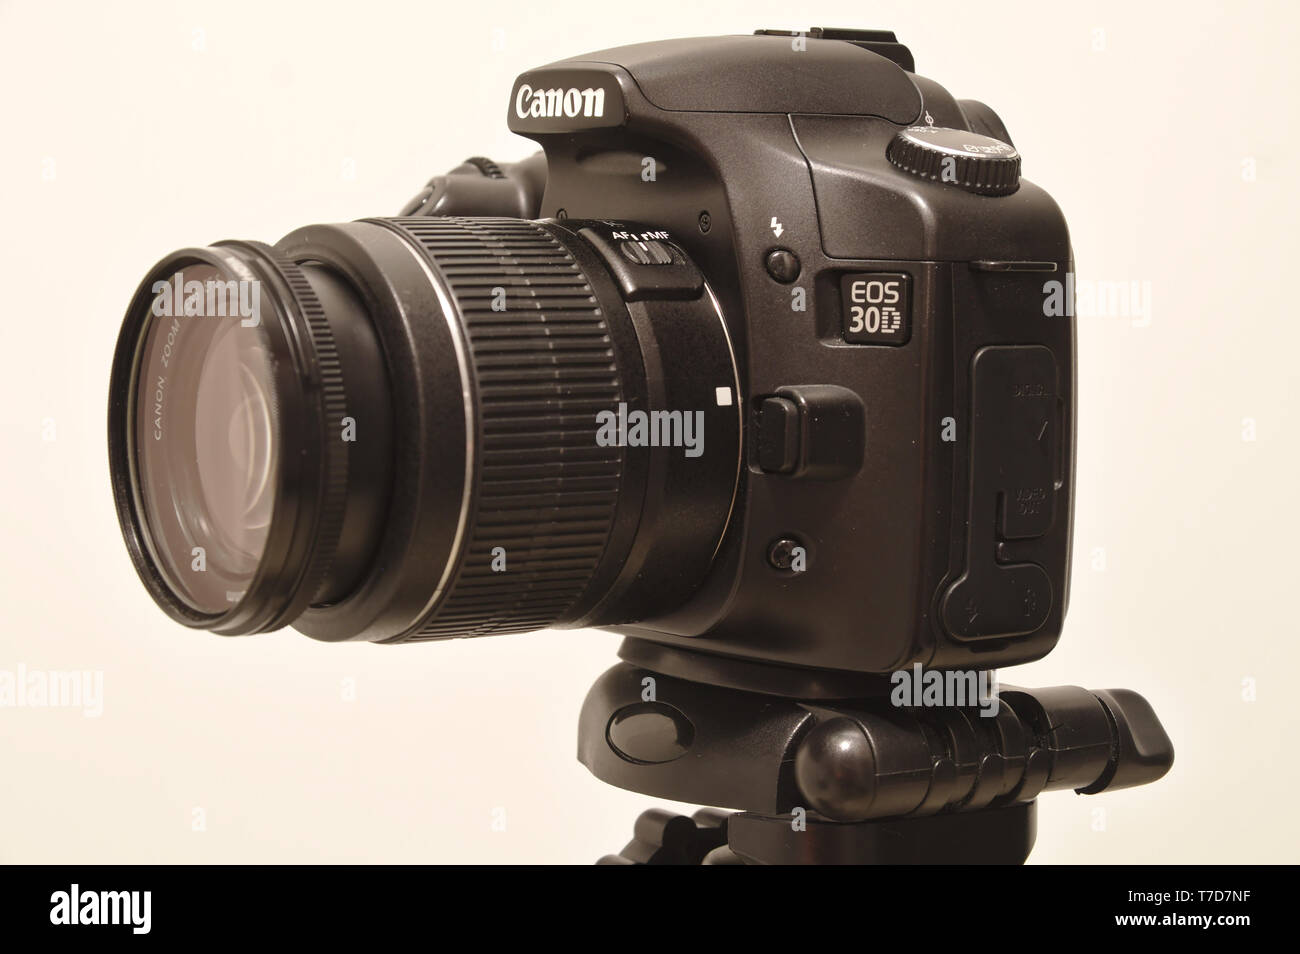 Canon 30D digital camera with Canon EF-S18-55mm lens and UV filter attached. Photo taken 05/2018 in Espoo, Finland - Stock Image